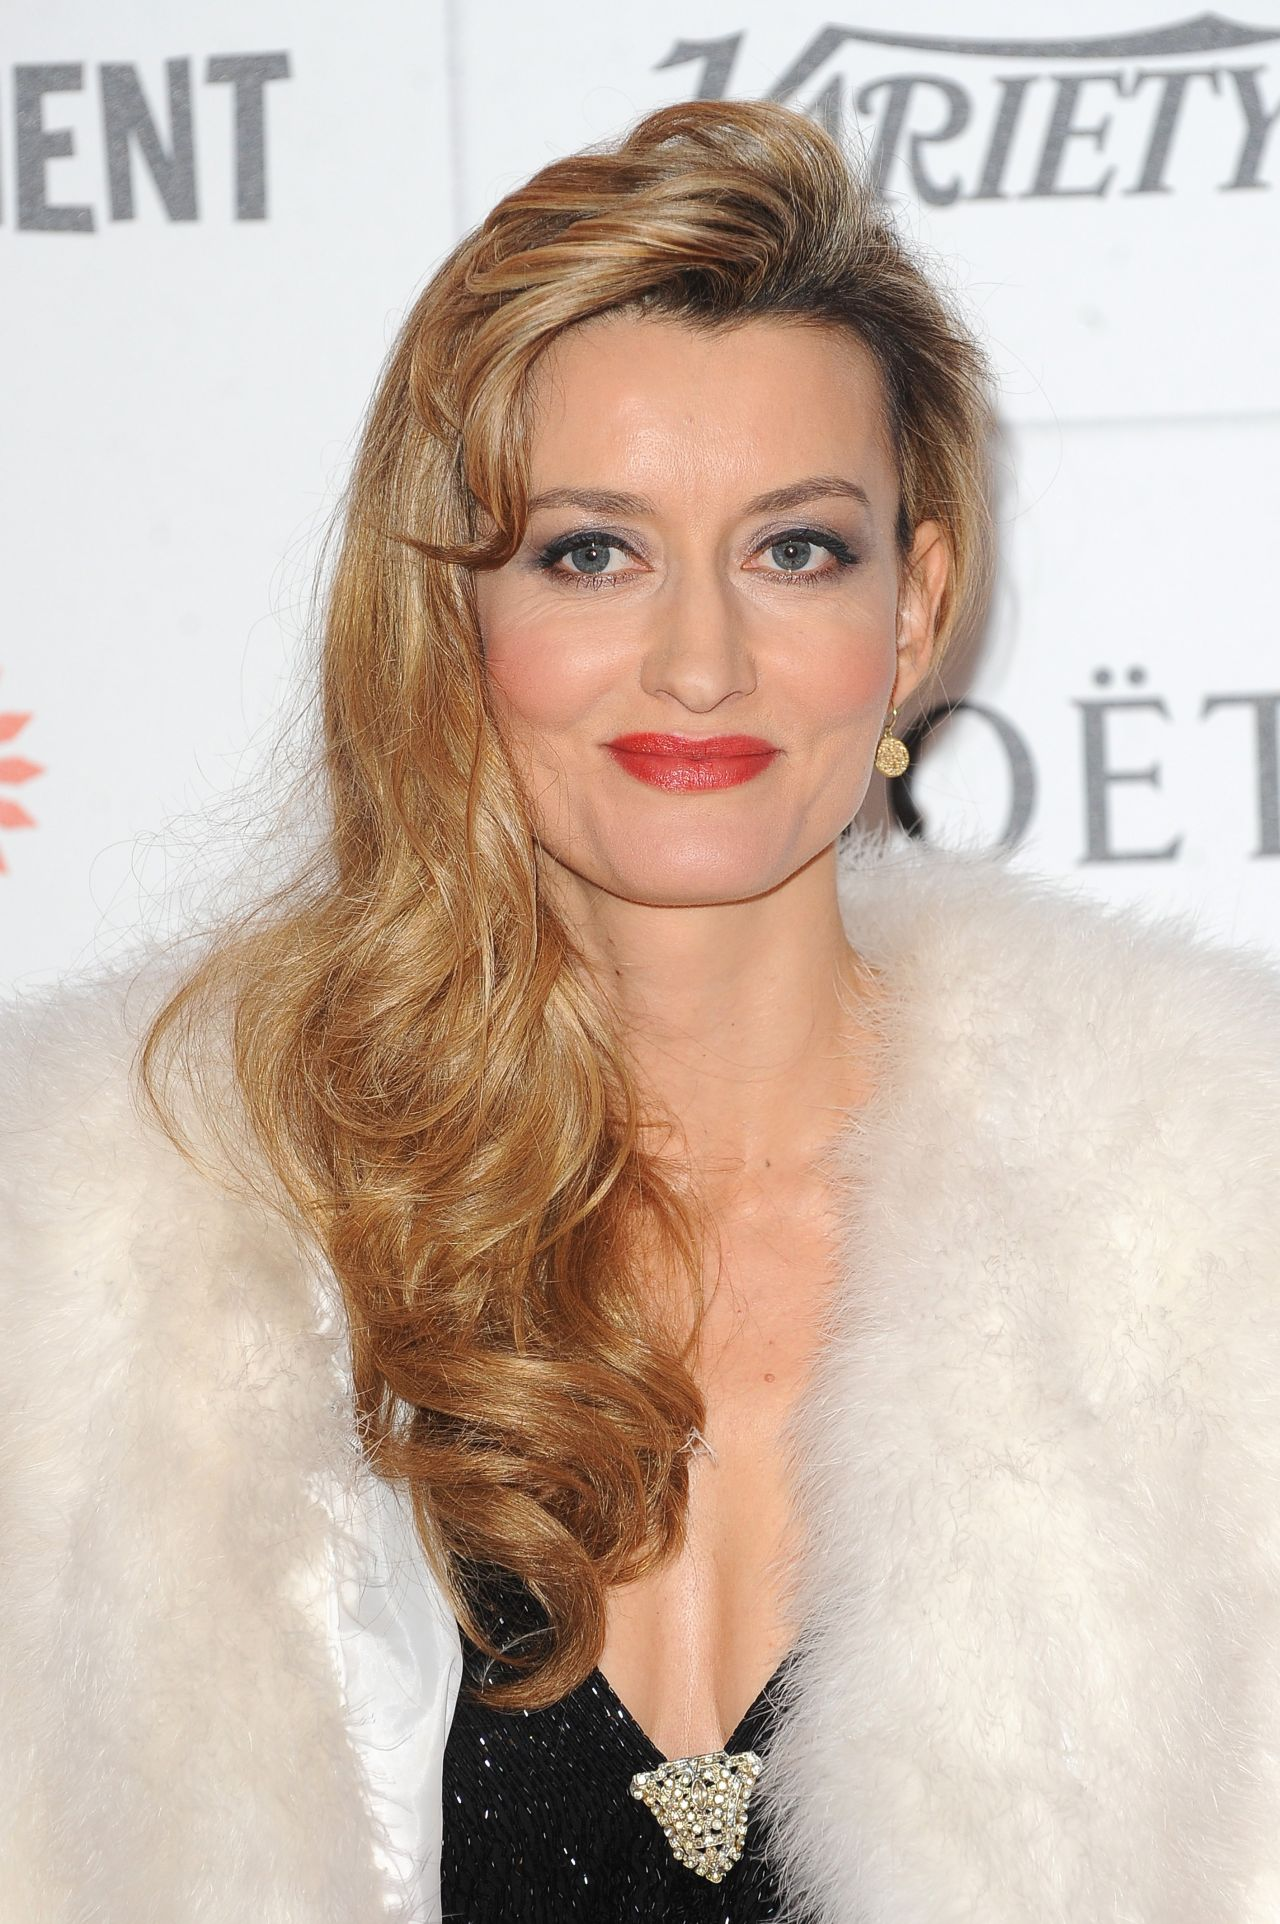 Natascha McElhone on Red Carpet - 2013 Moet British Independent Film Awards